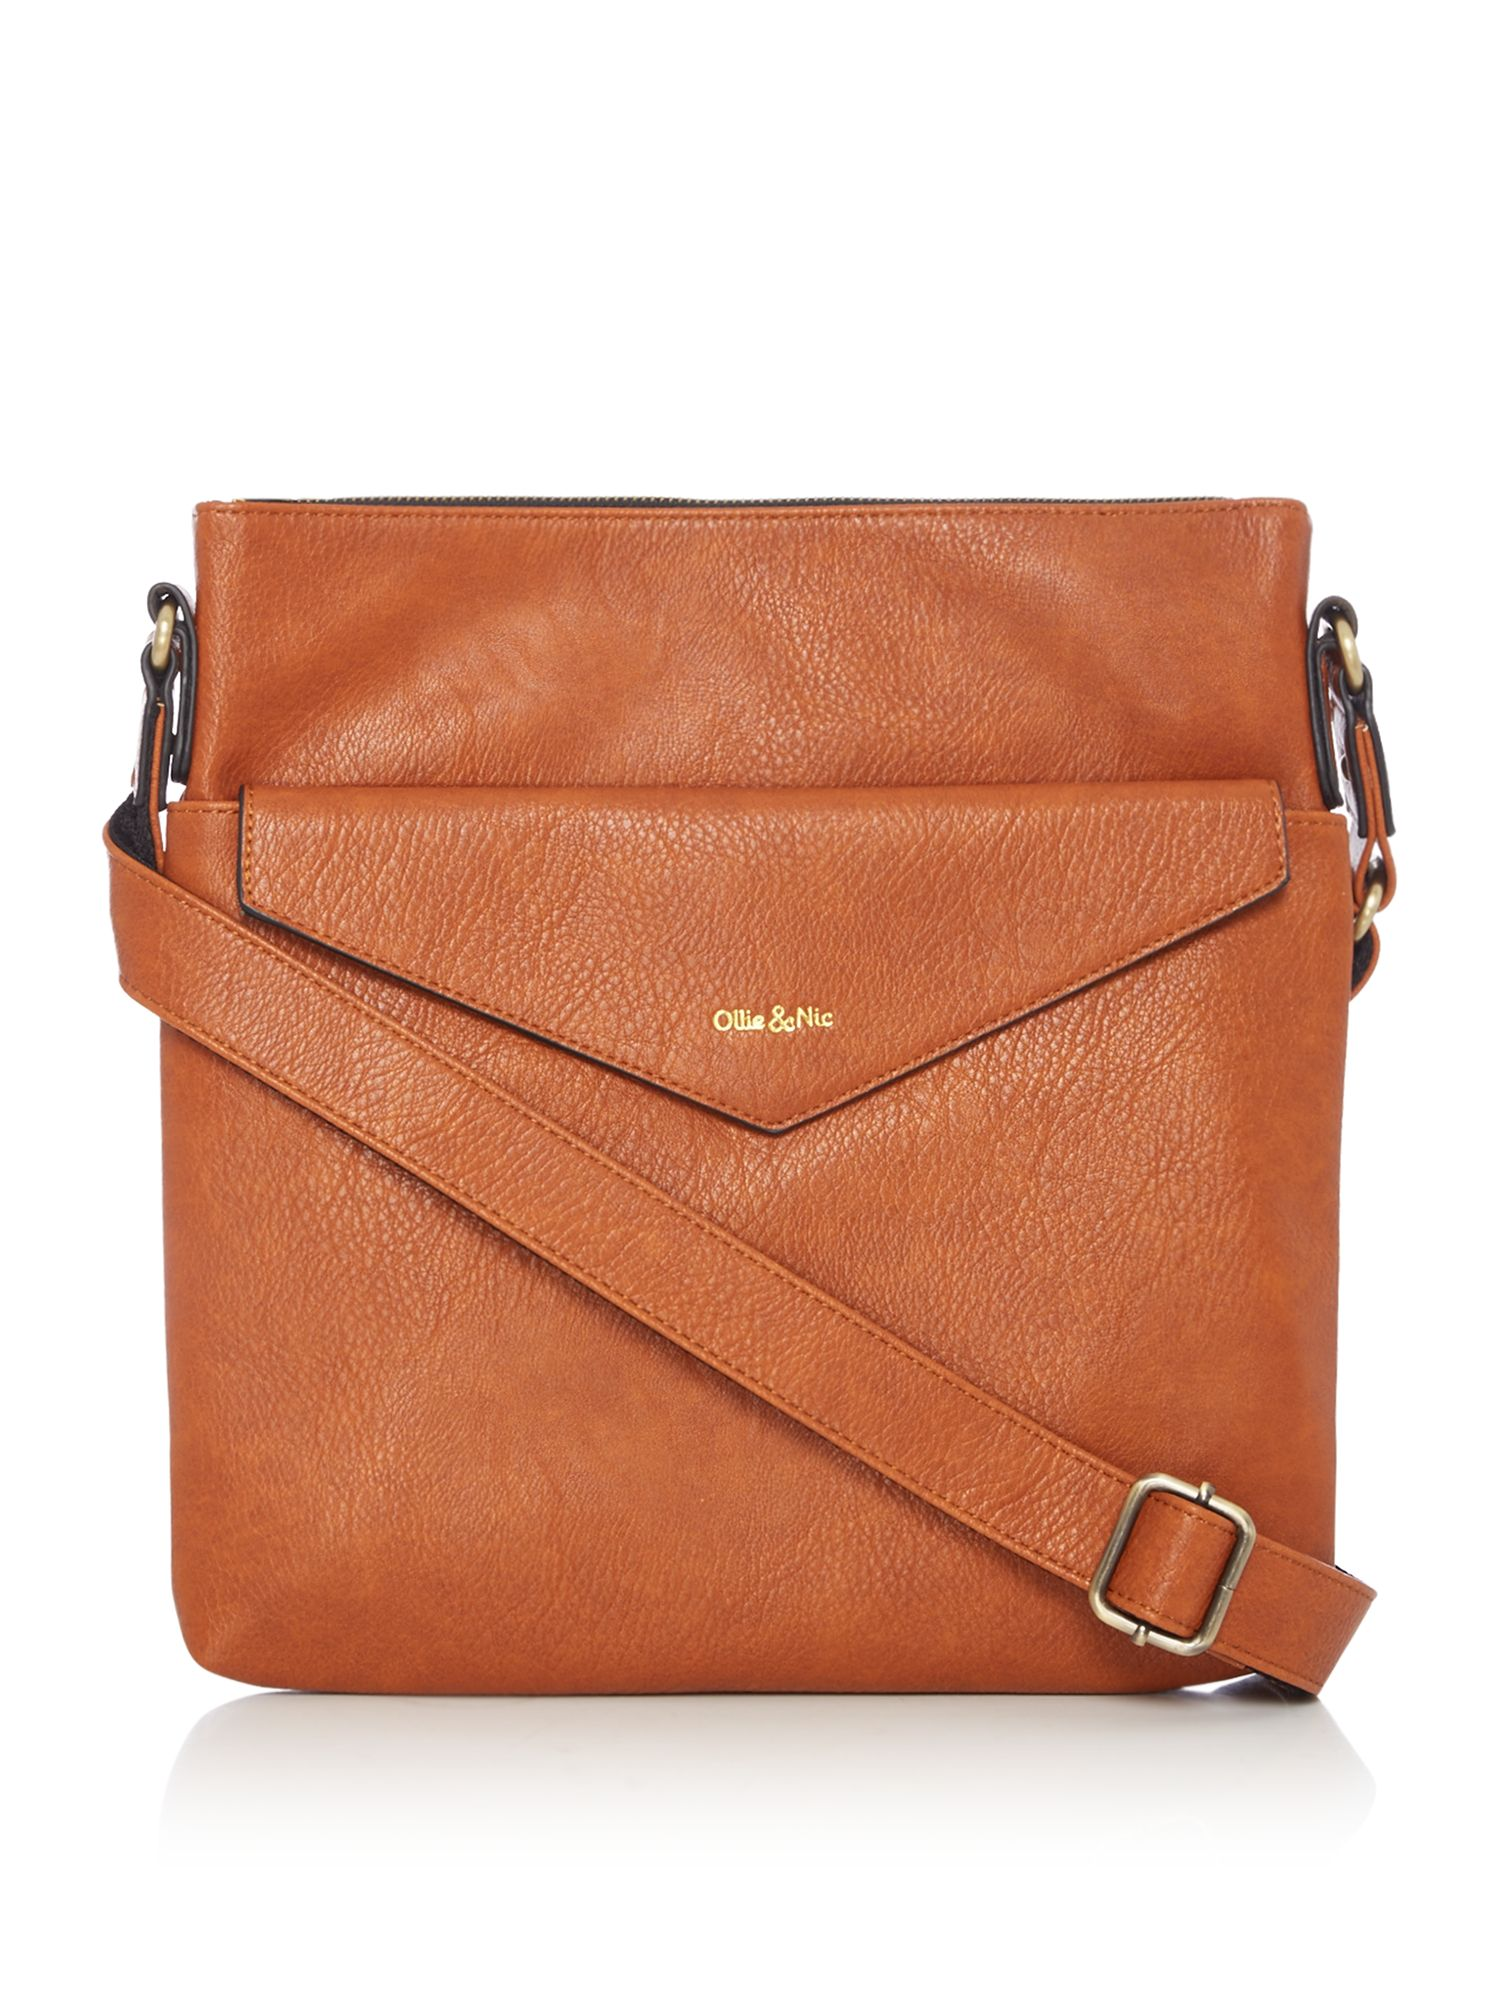 Ollie & Nic Eddy Large Crossbody, Tan